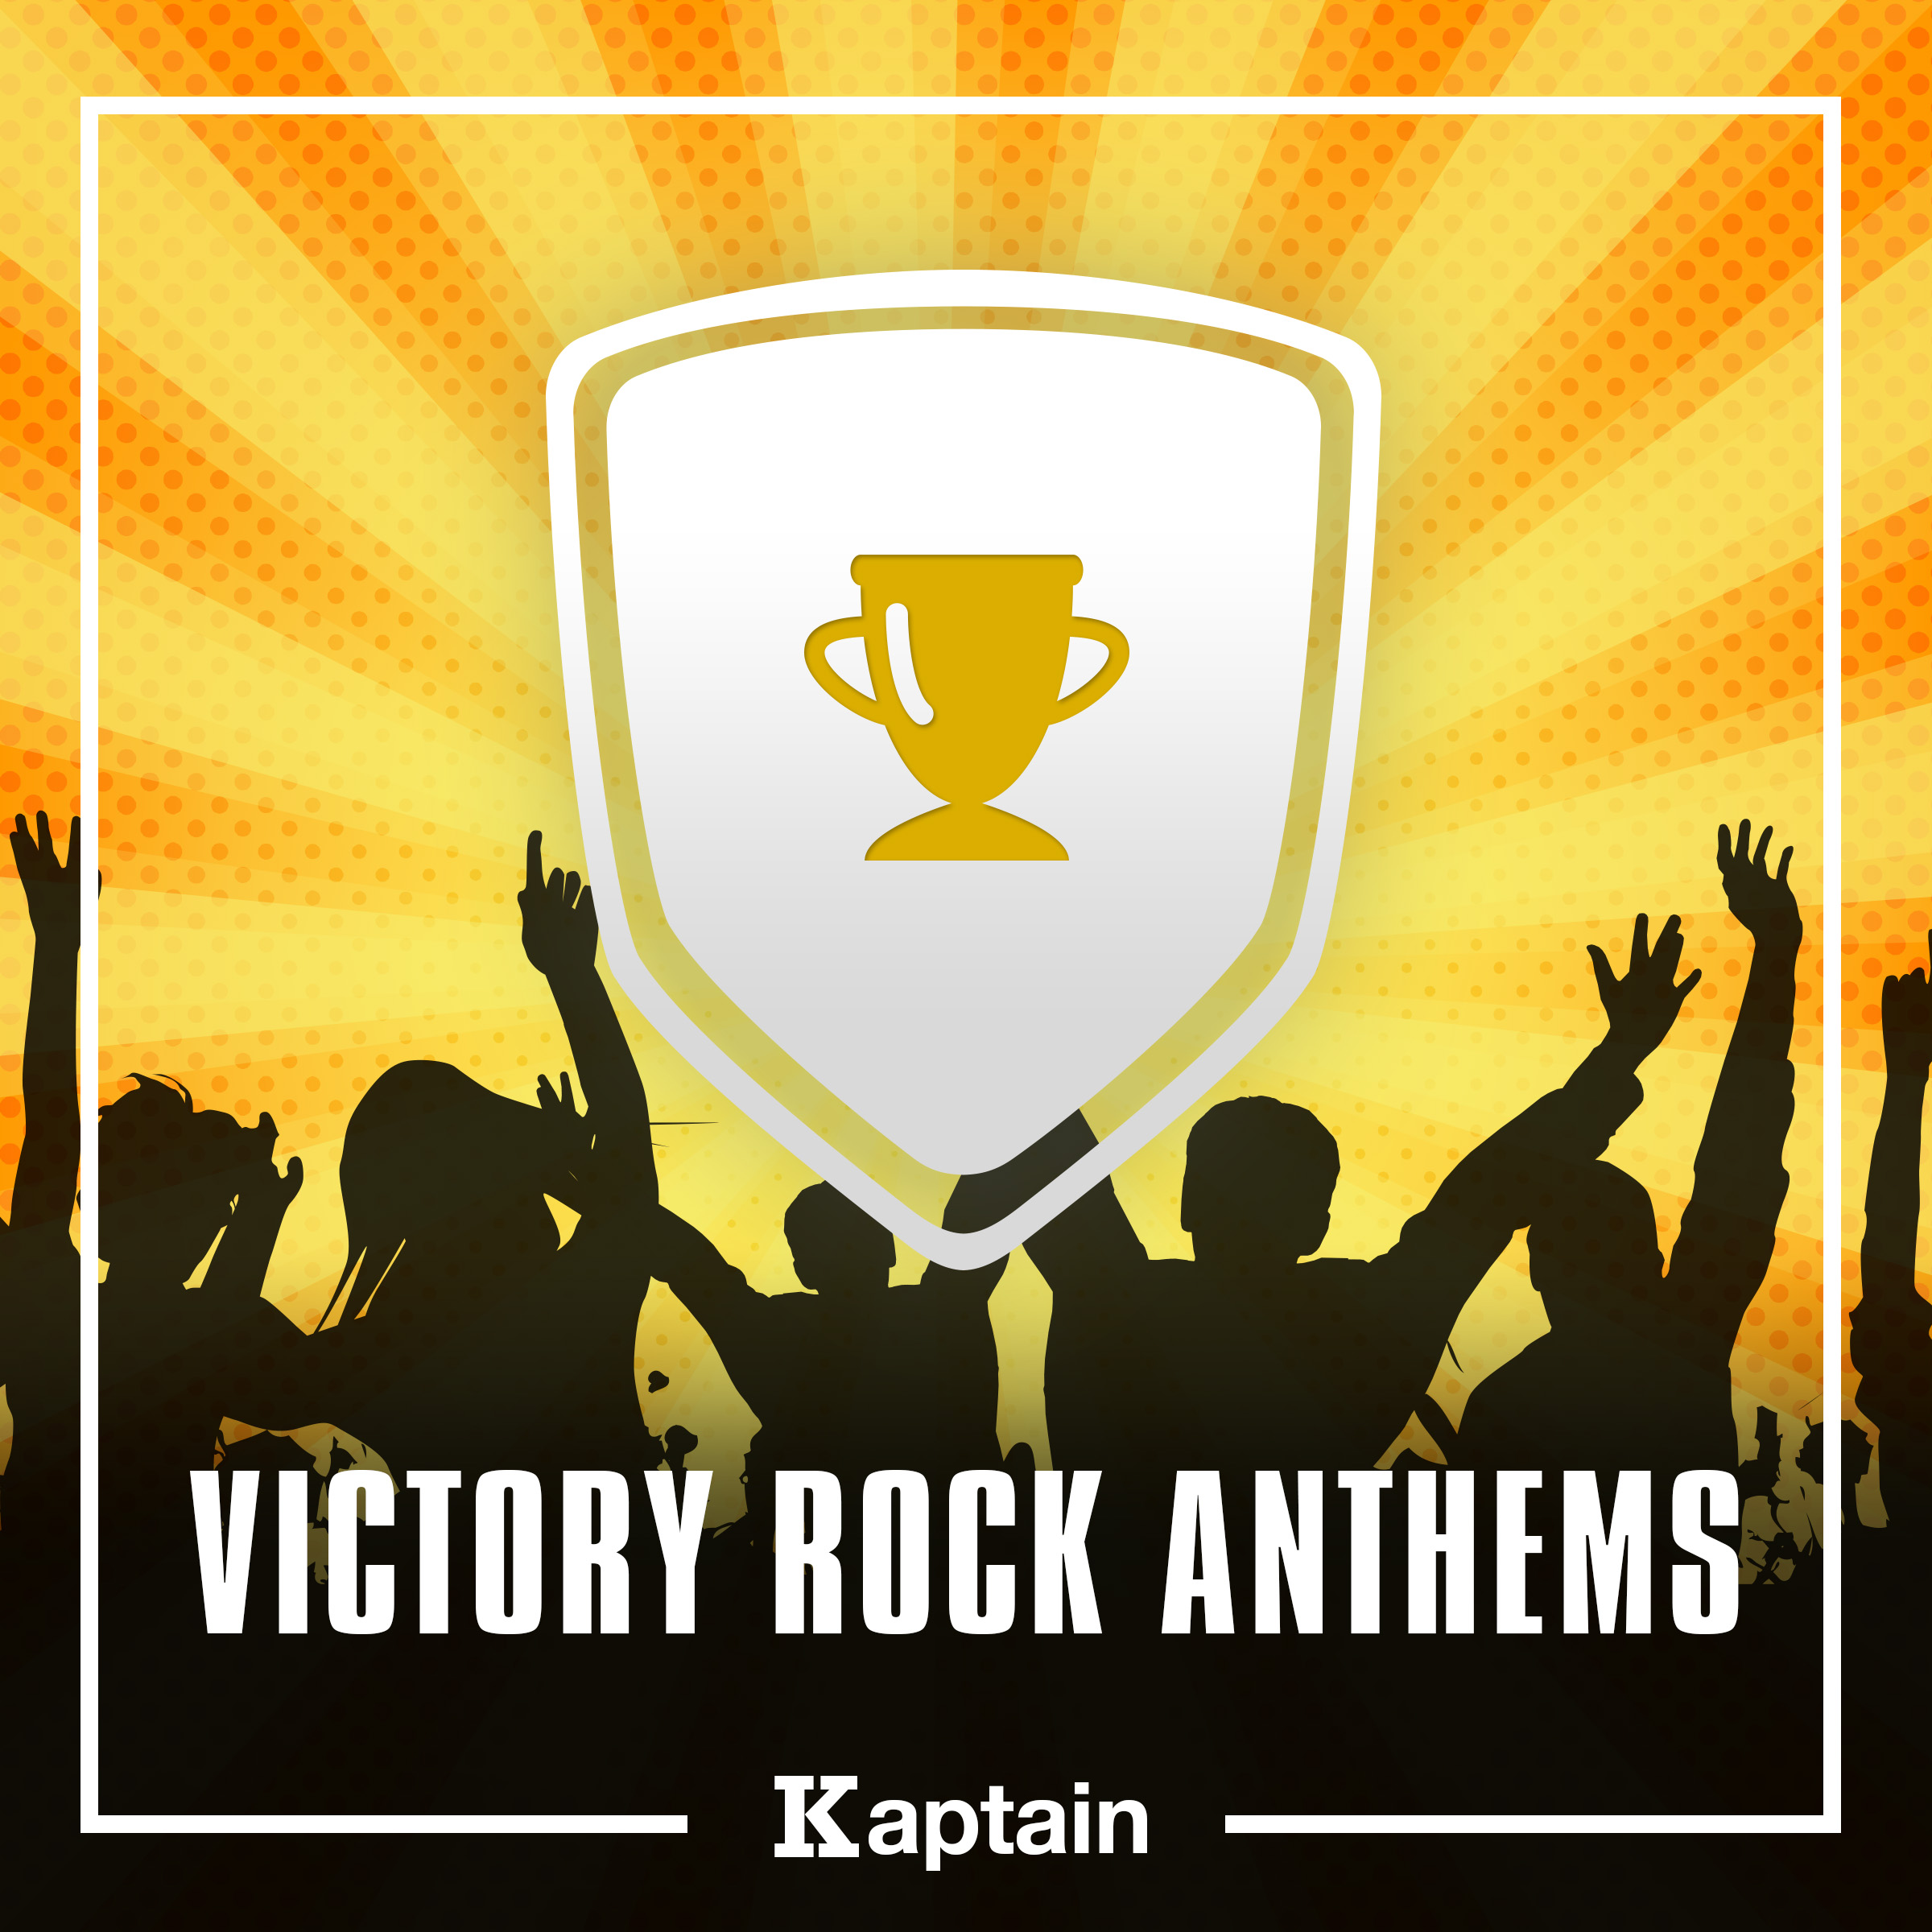 Victory Rock Anthems